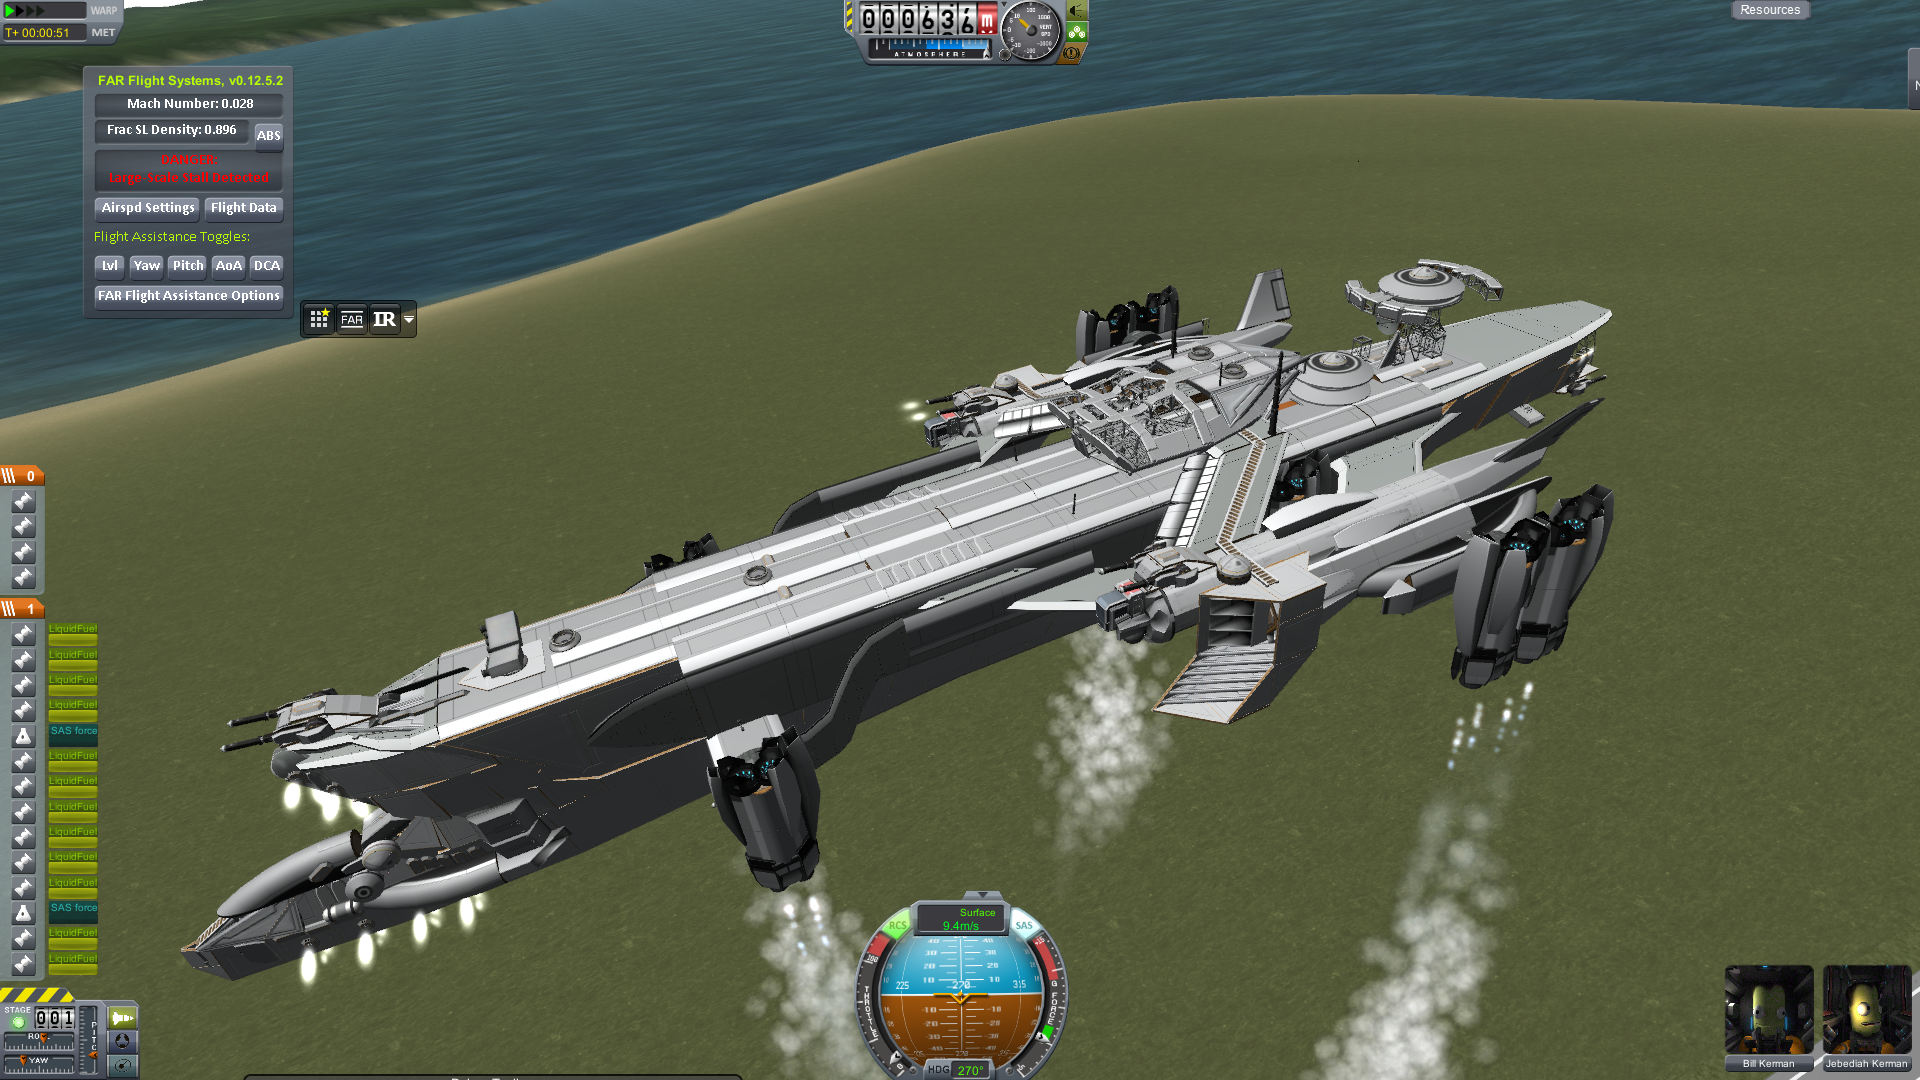 kerbal space program battlestar - photo #28